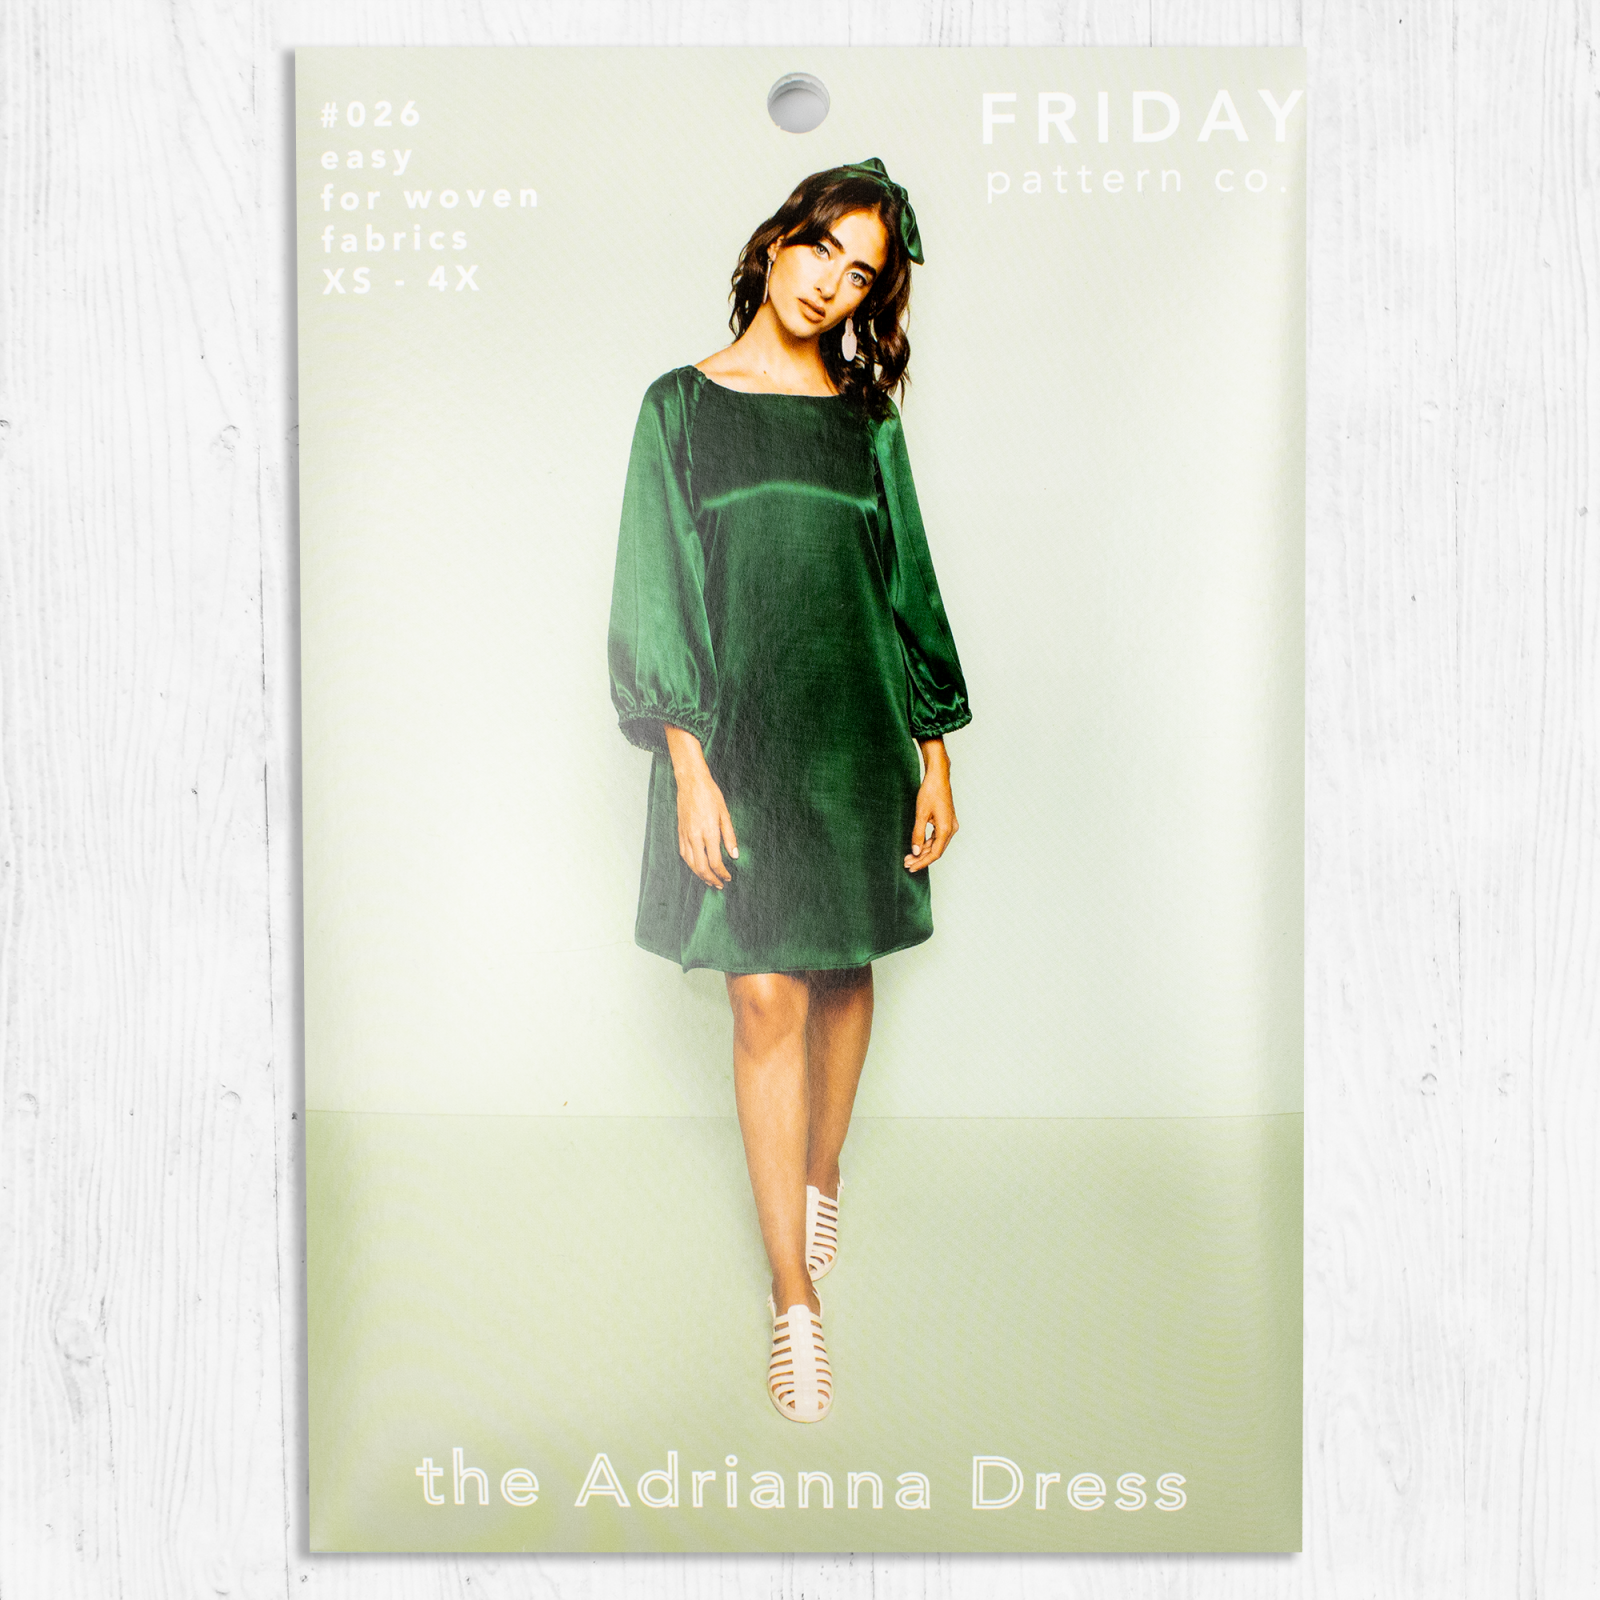 Friday Pattern Co. - The Adrianna Dress